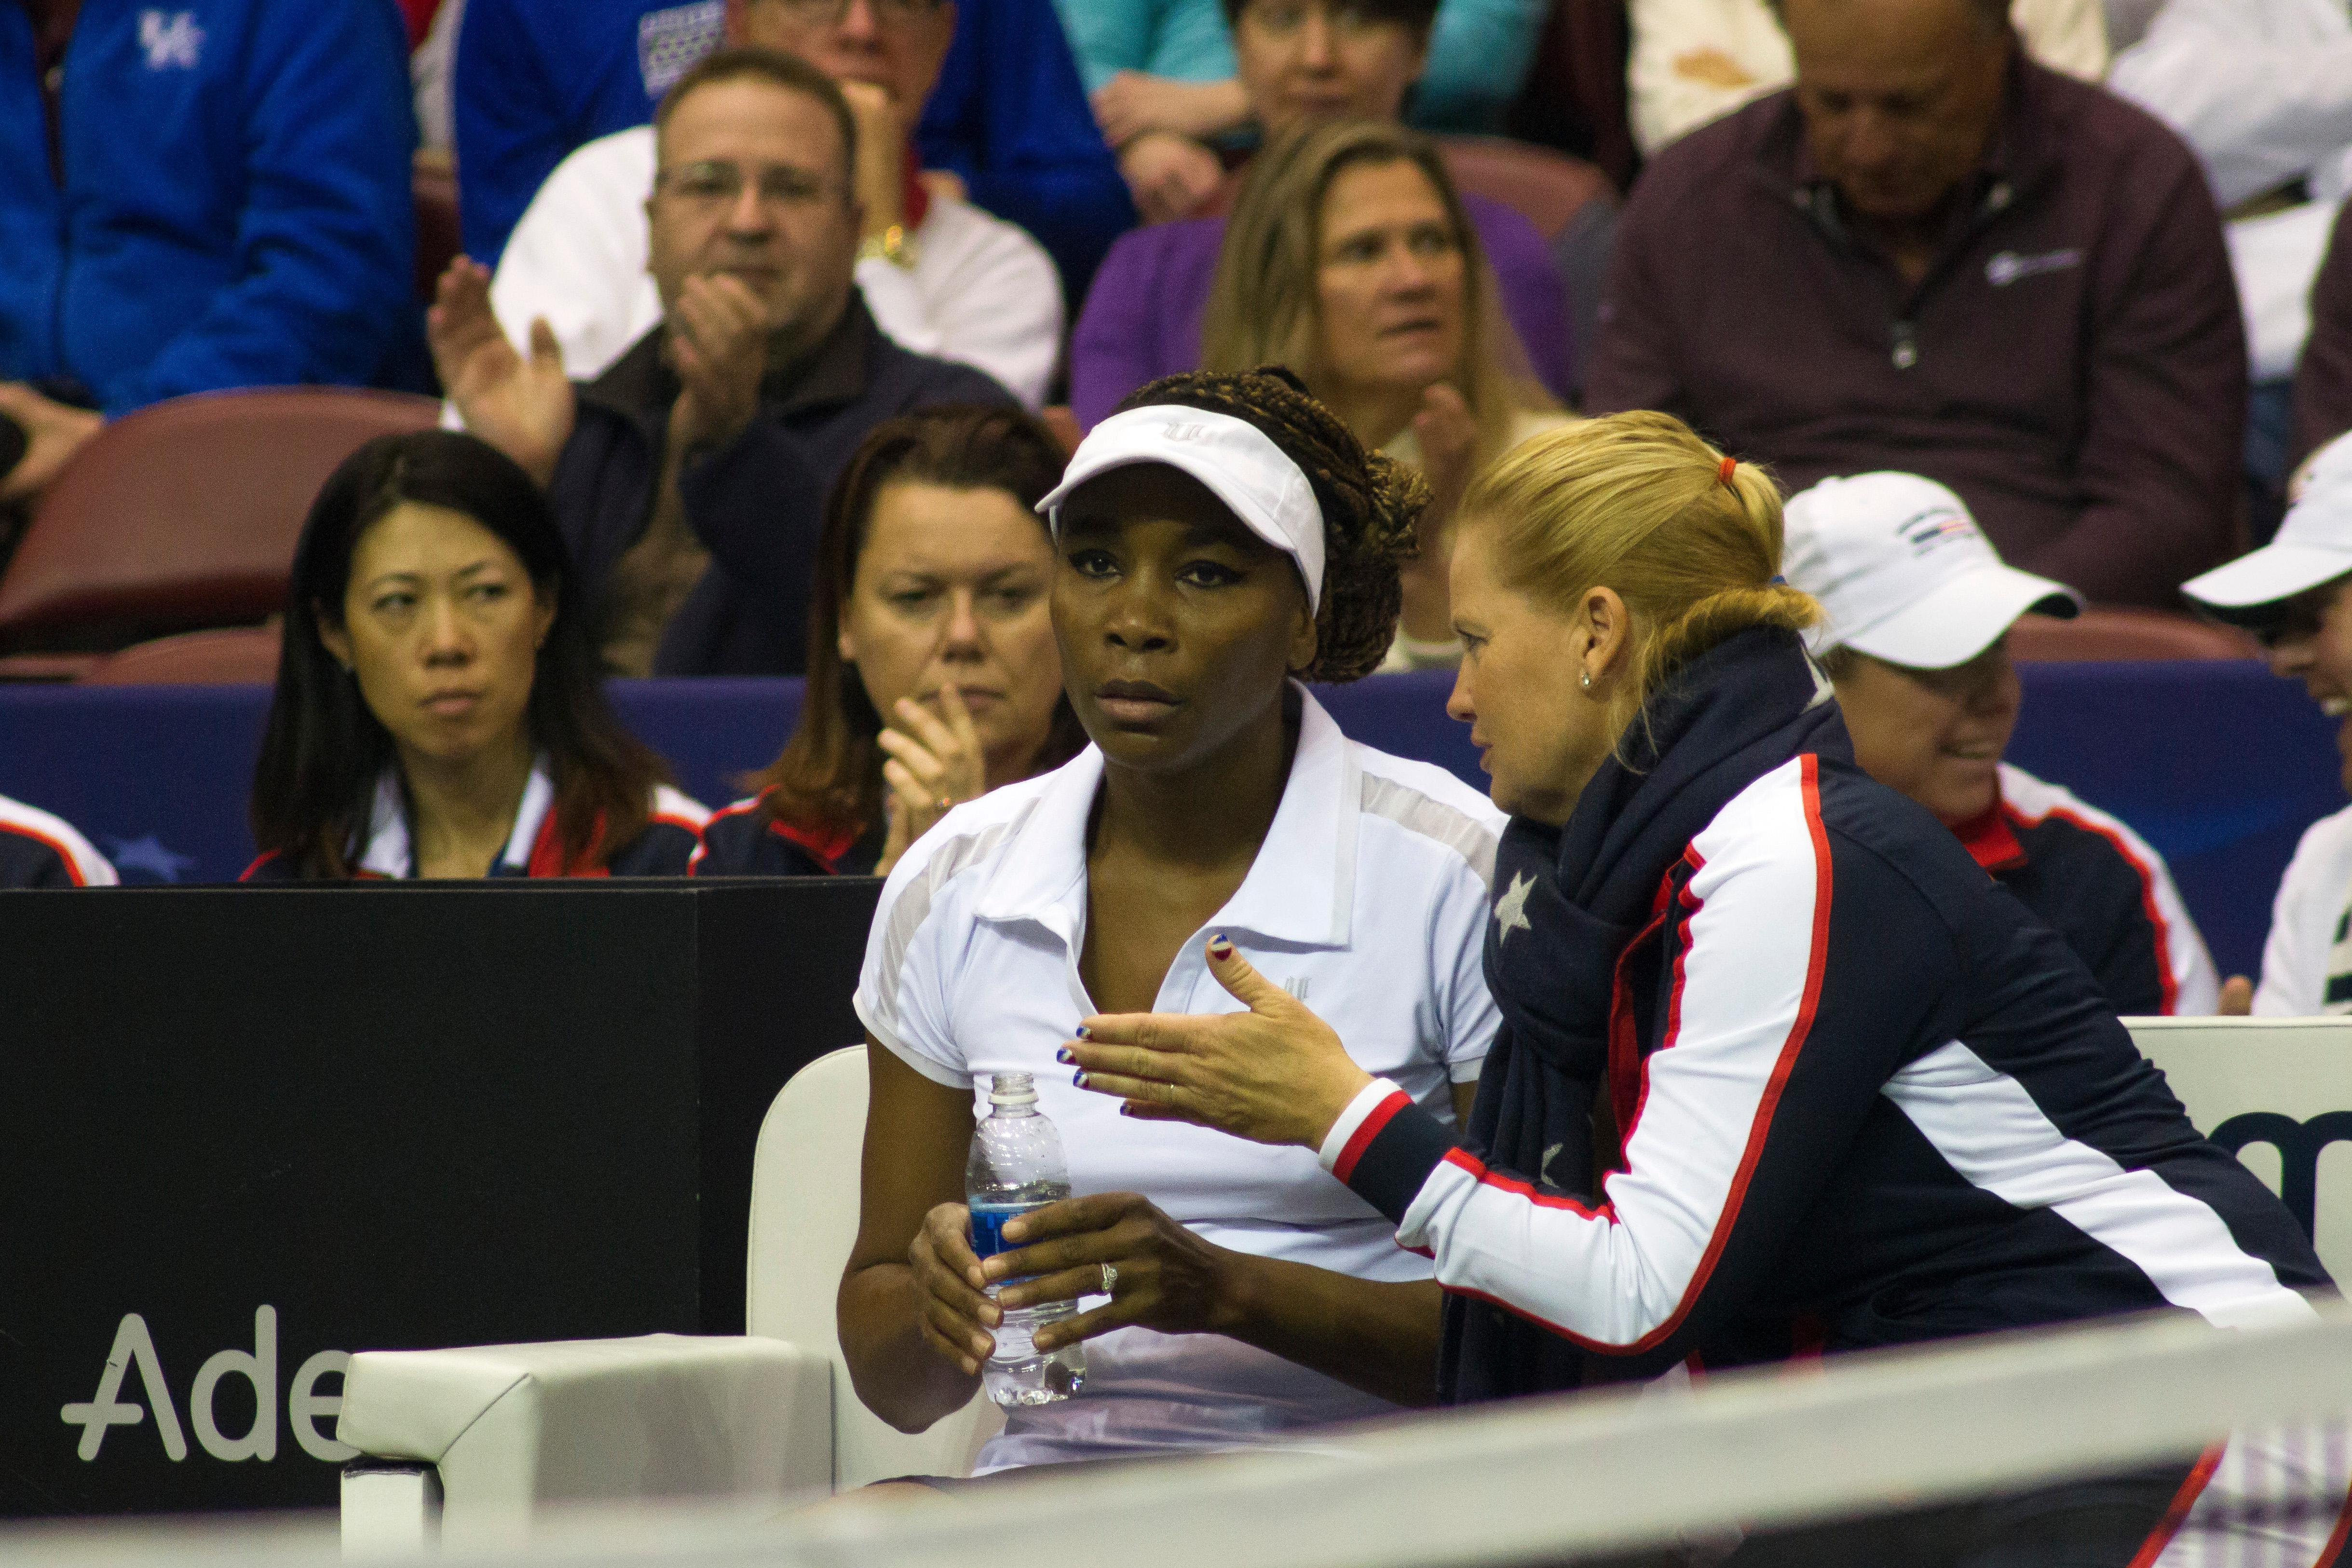 Venus Williams kicks off the Fed Cup in Asheville on Feb. 10, 2018. Williams went on to defeat Netherland's Arantxa Rus. (Photo credit: WLOS Staff)